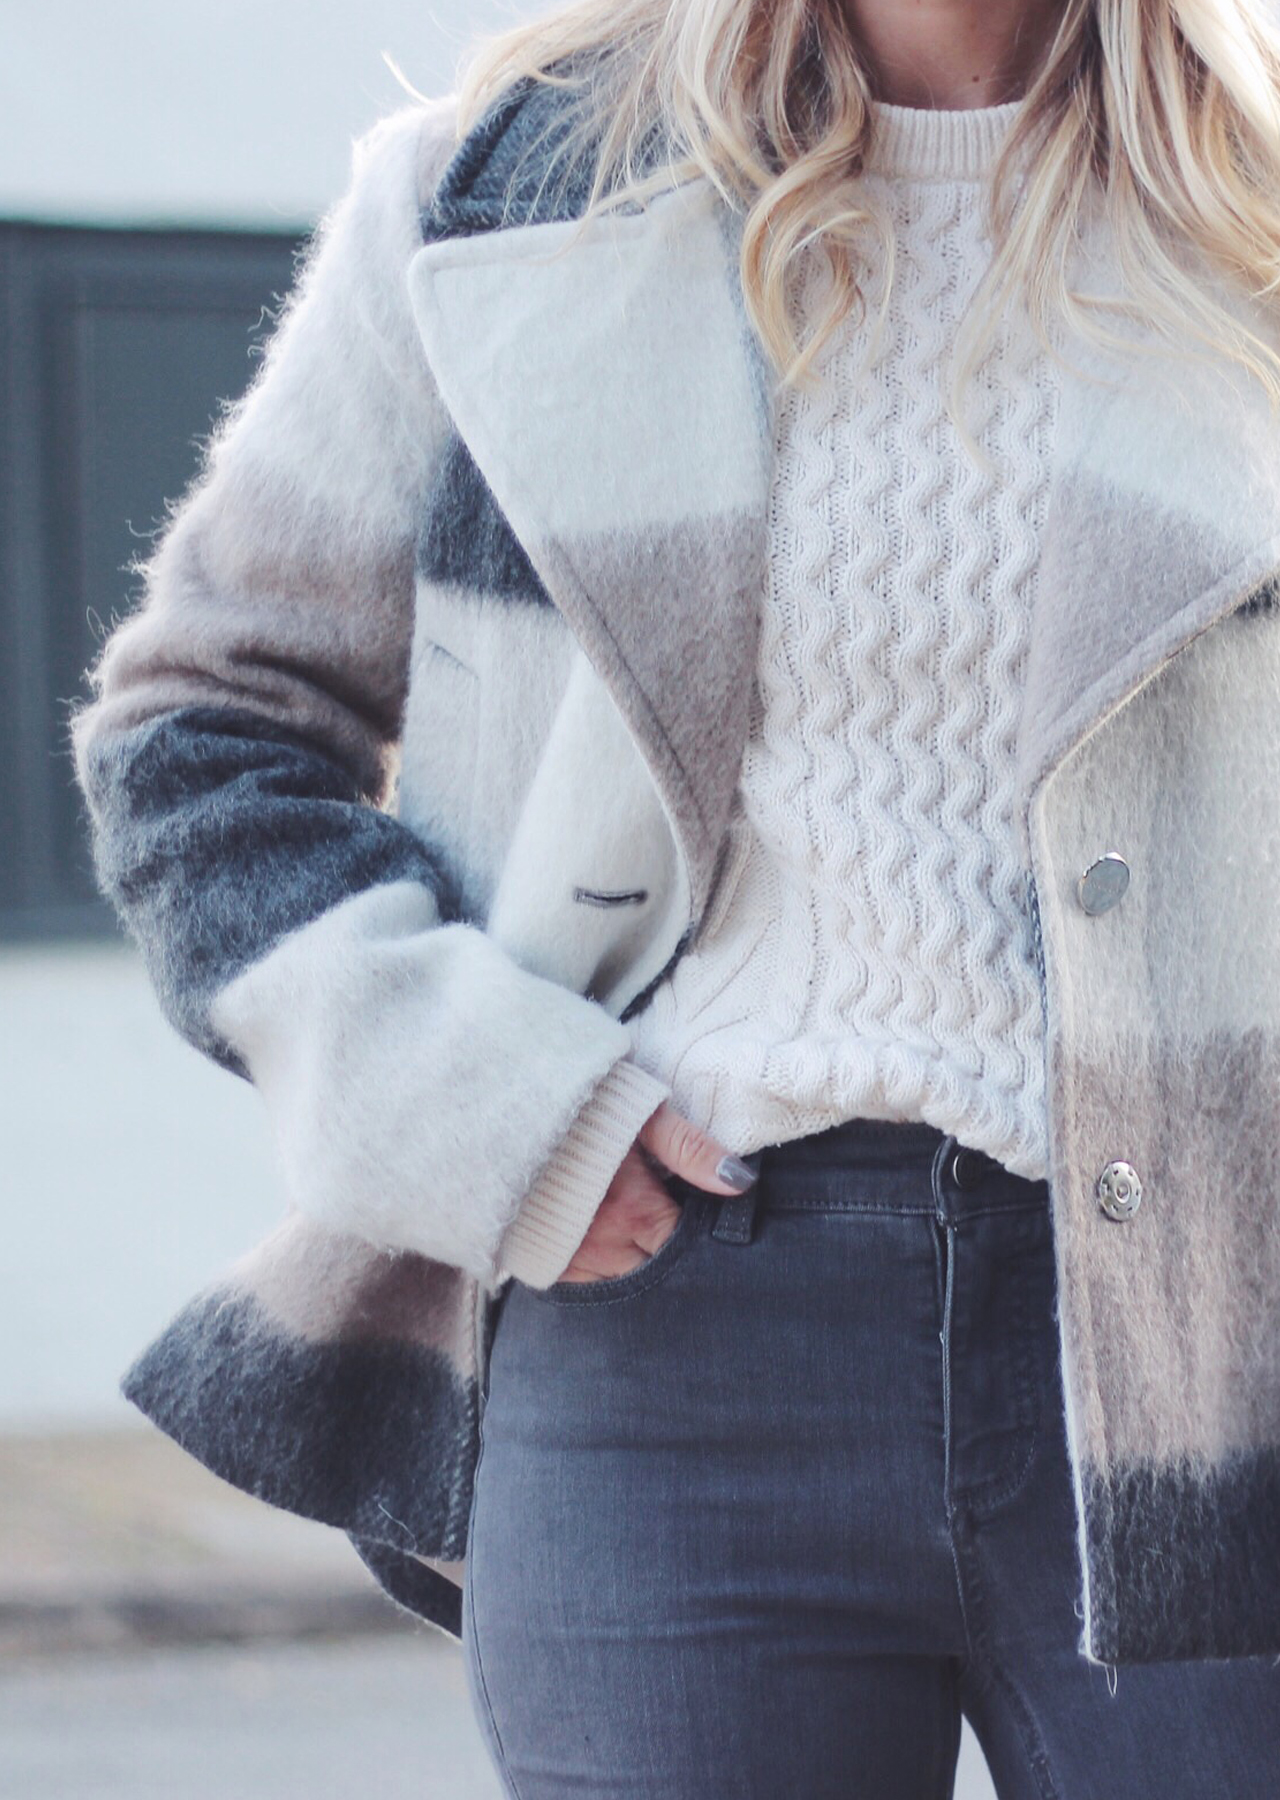 The Steele Maiden: Cozy Winter Textures